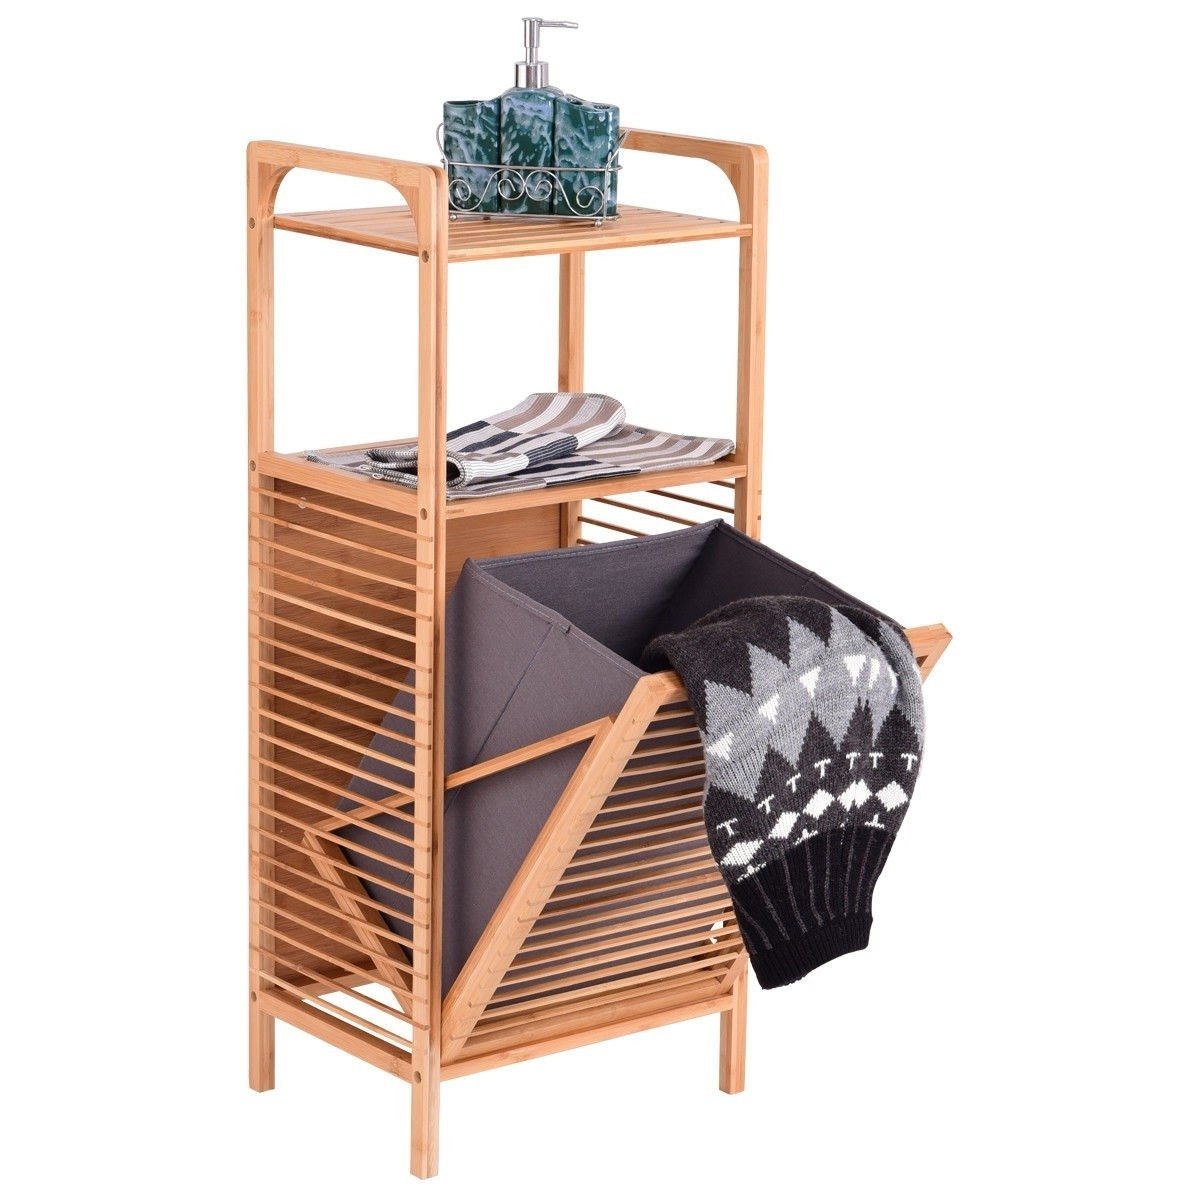 Bamboo 2-in-1 Laundry Hamper Side Table with 2 Shelves and Clothes Basket